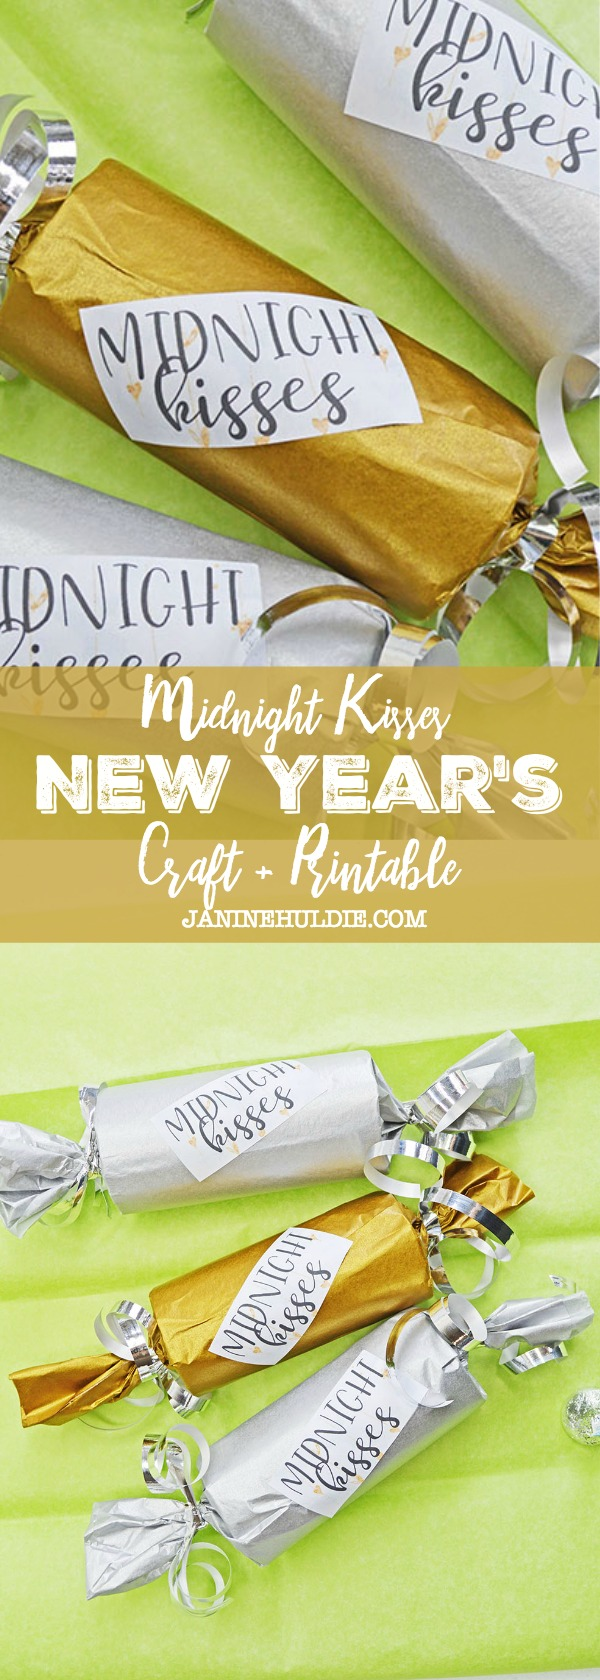 Midnight Kisses New Year's Eve Craft and Printable